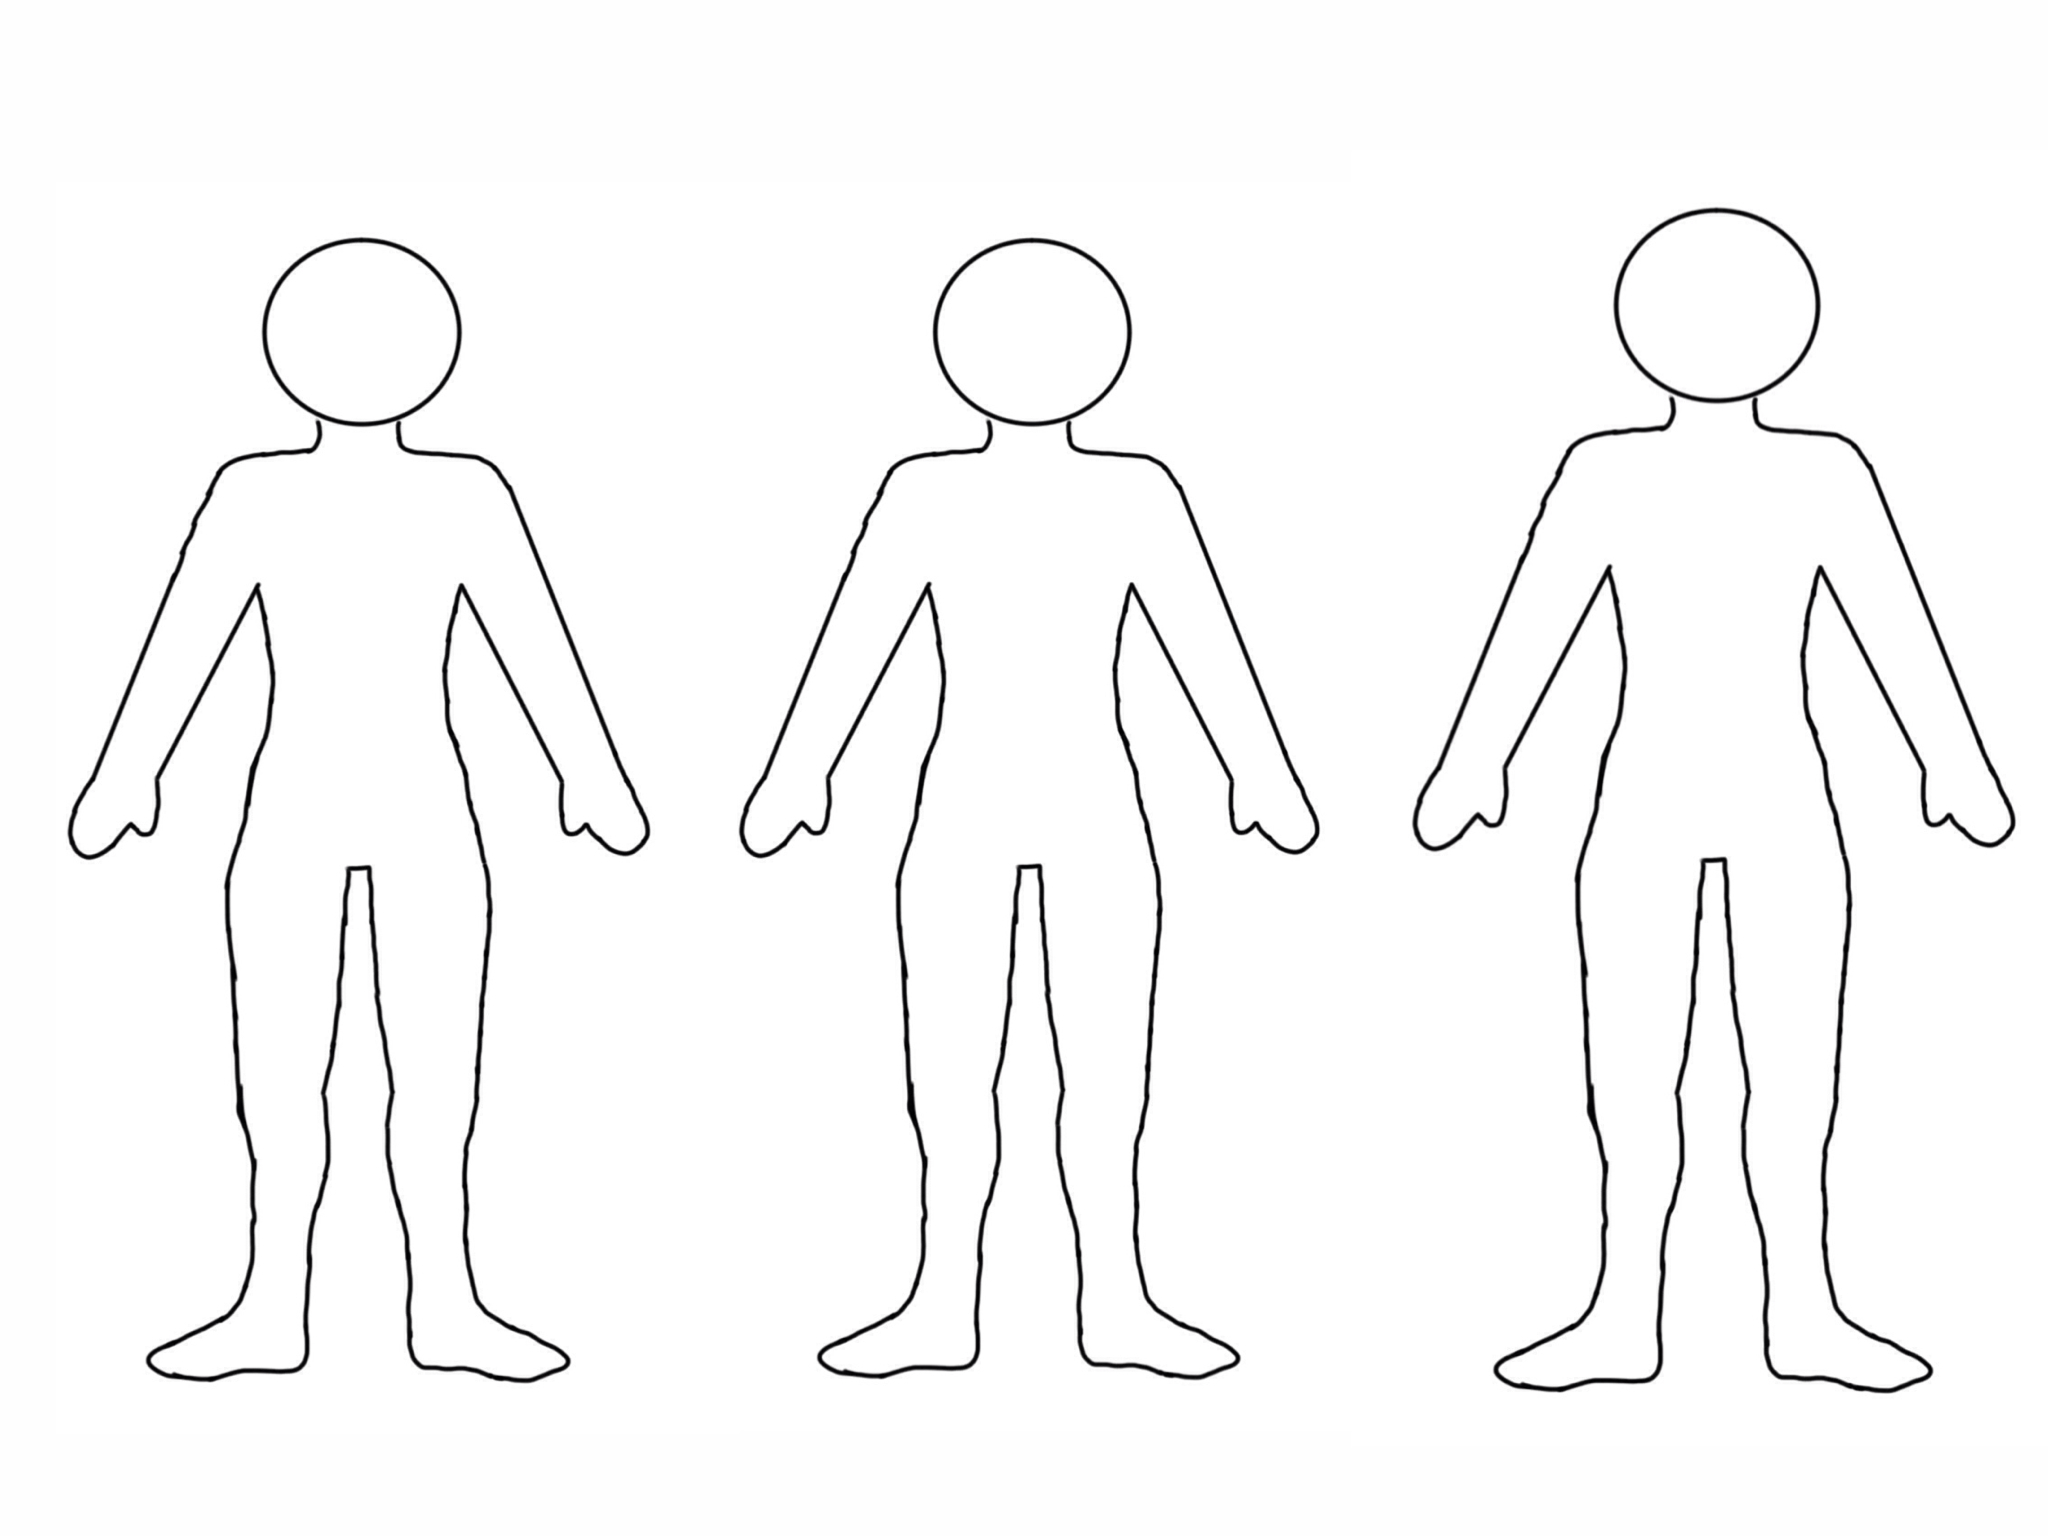 Man Paper-doll Templates by Coco853 on DeviantArt